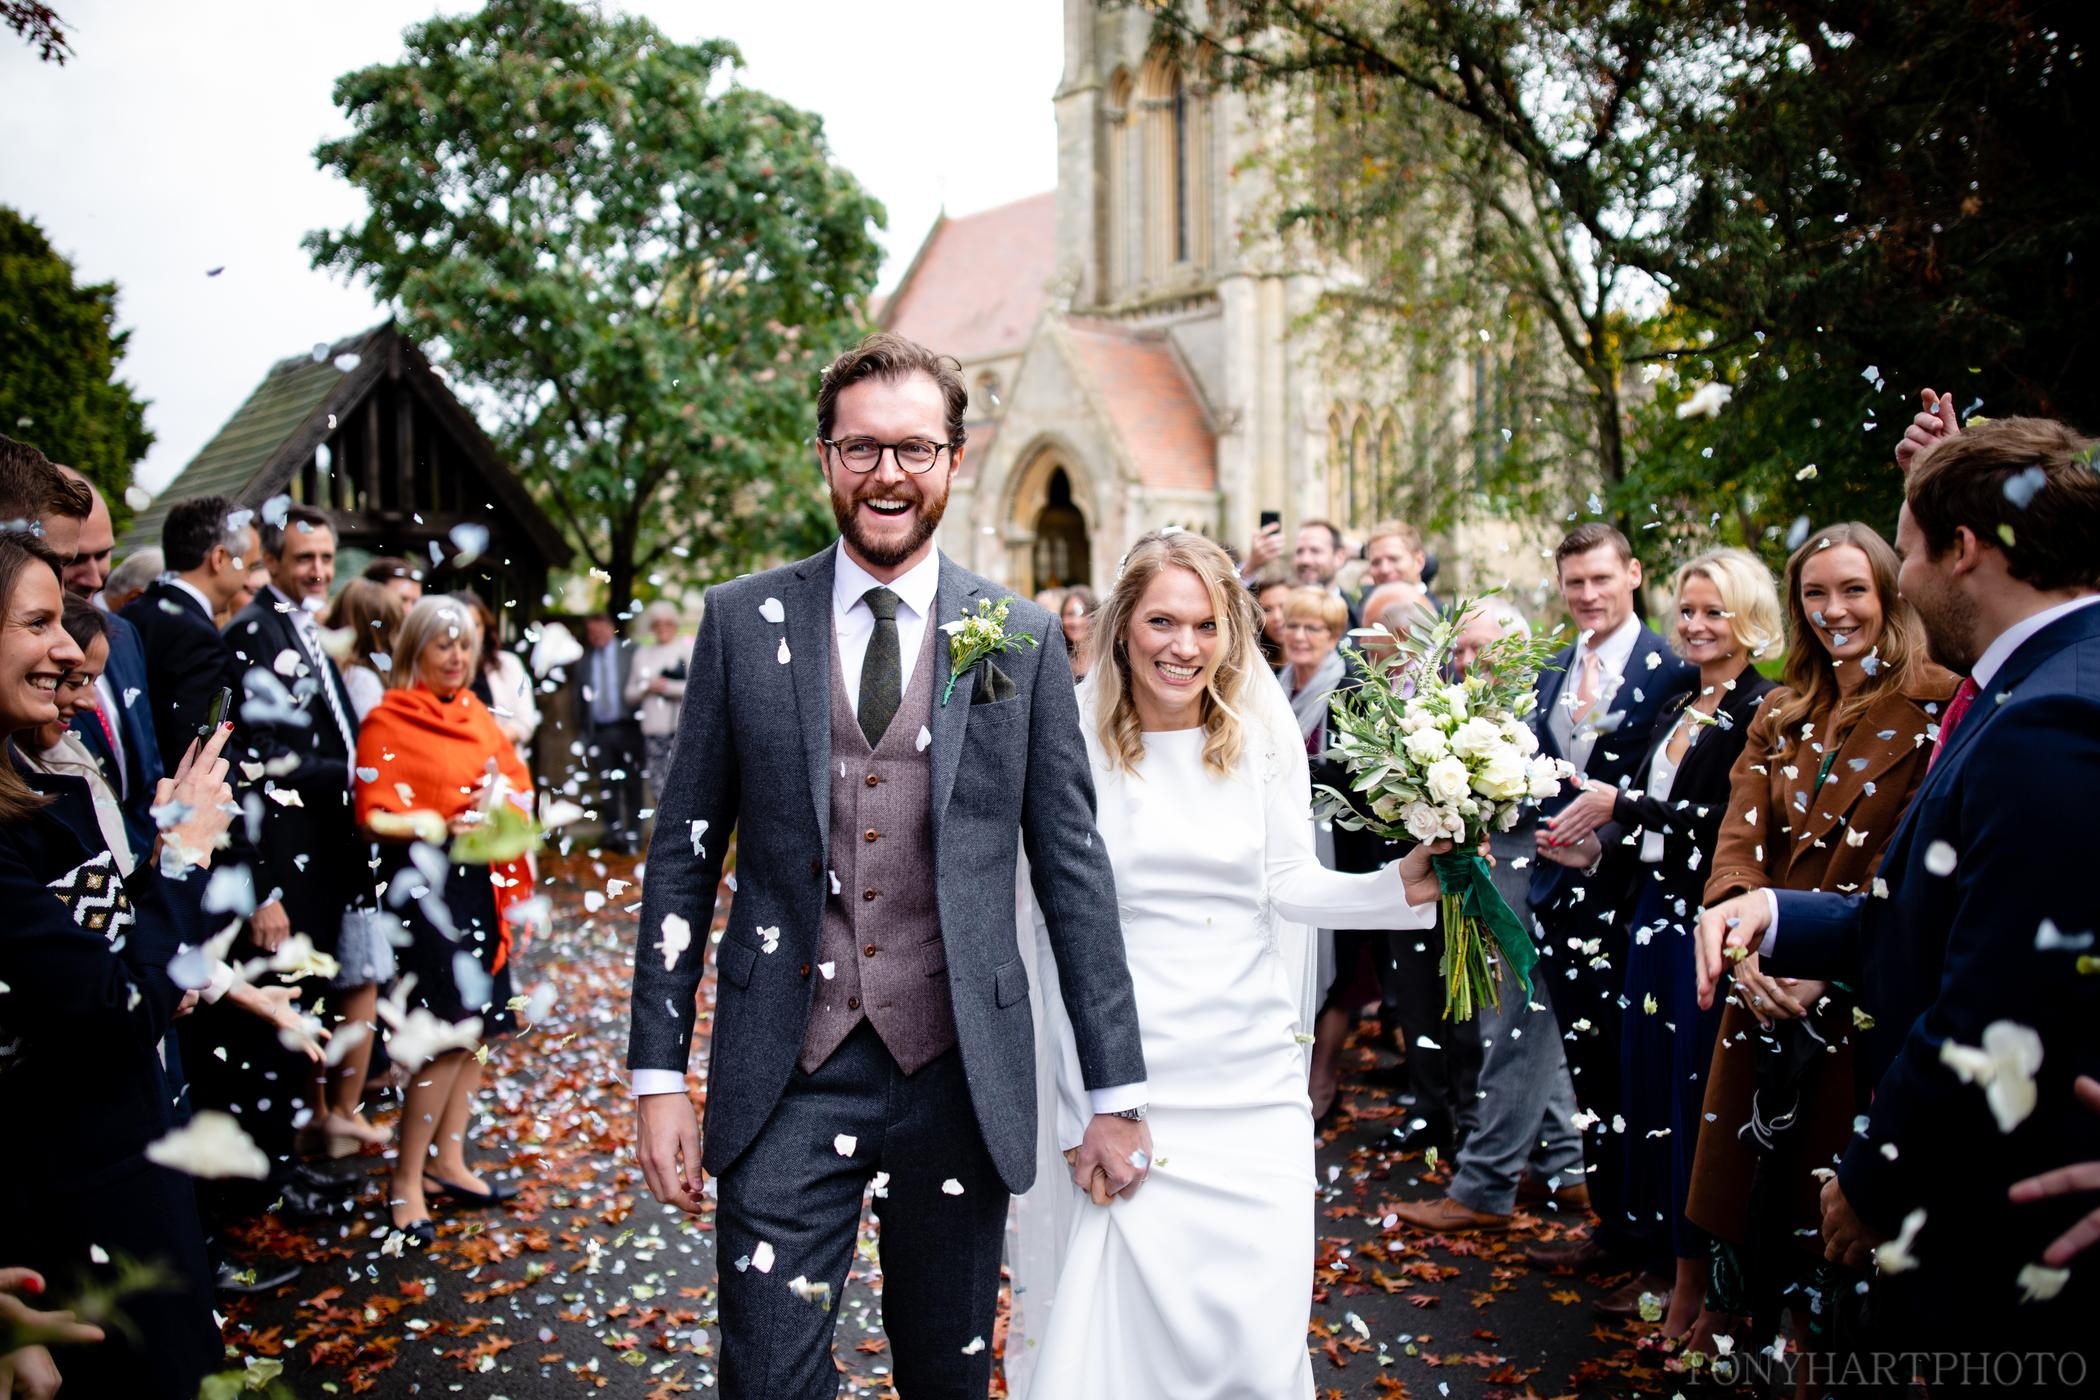 Wedding confetti at All Saints Church in Sherbourne, Warwickshire